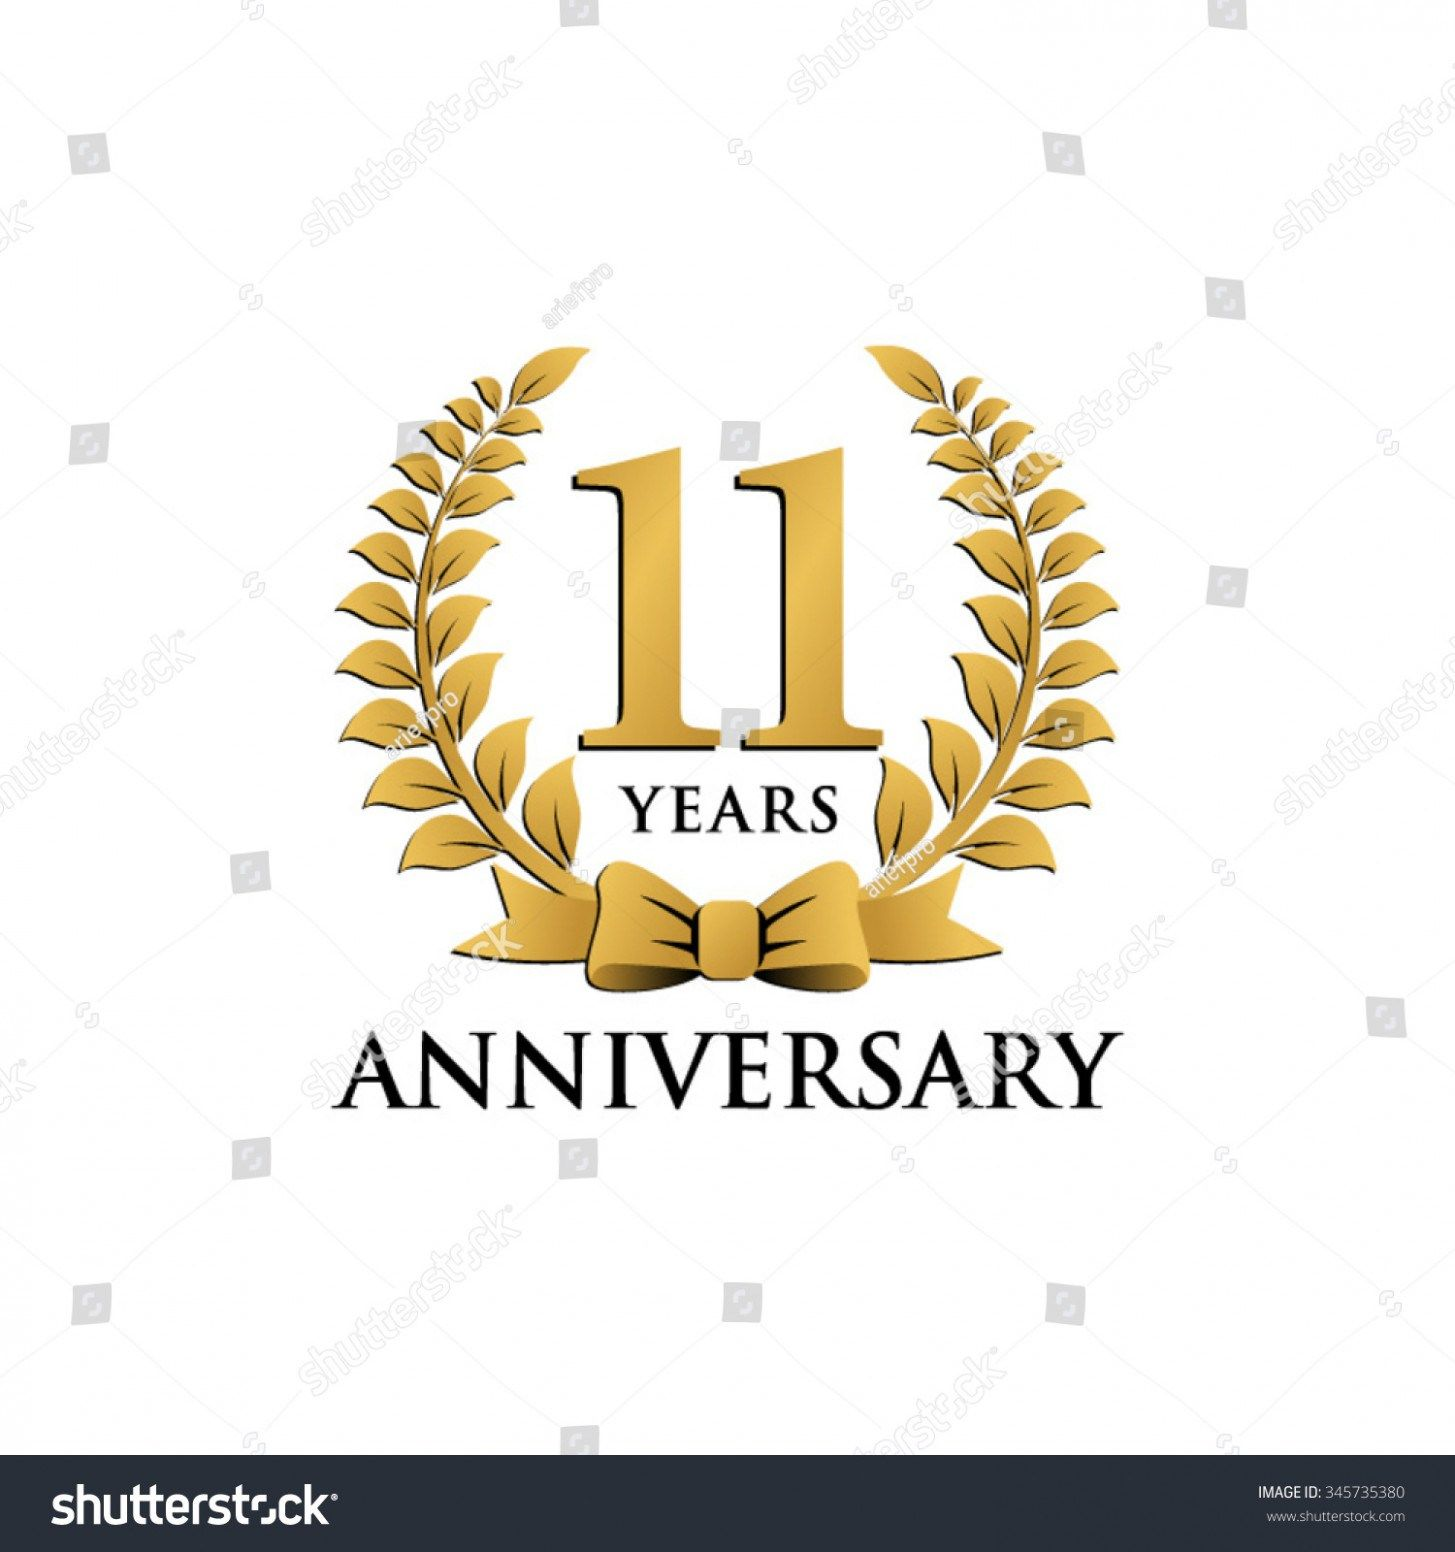 29 Taboos About 29 Year Anniversary Symbol You Should Never Share On Twitter 29 Year Anniversary Paper Gifts Anniversary Year Anniversary 11 Year Anniversary